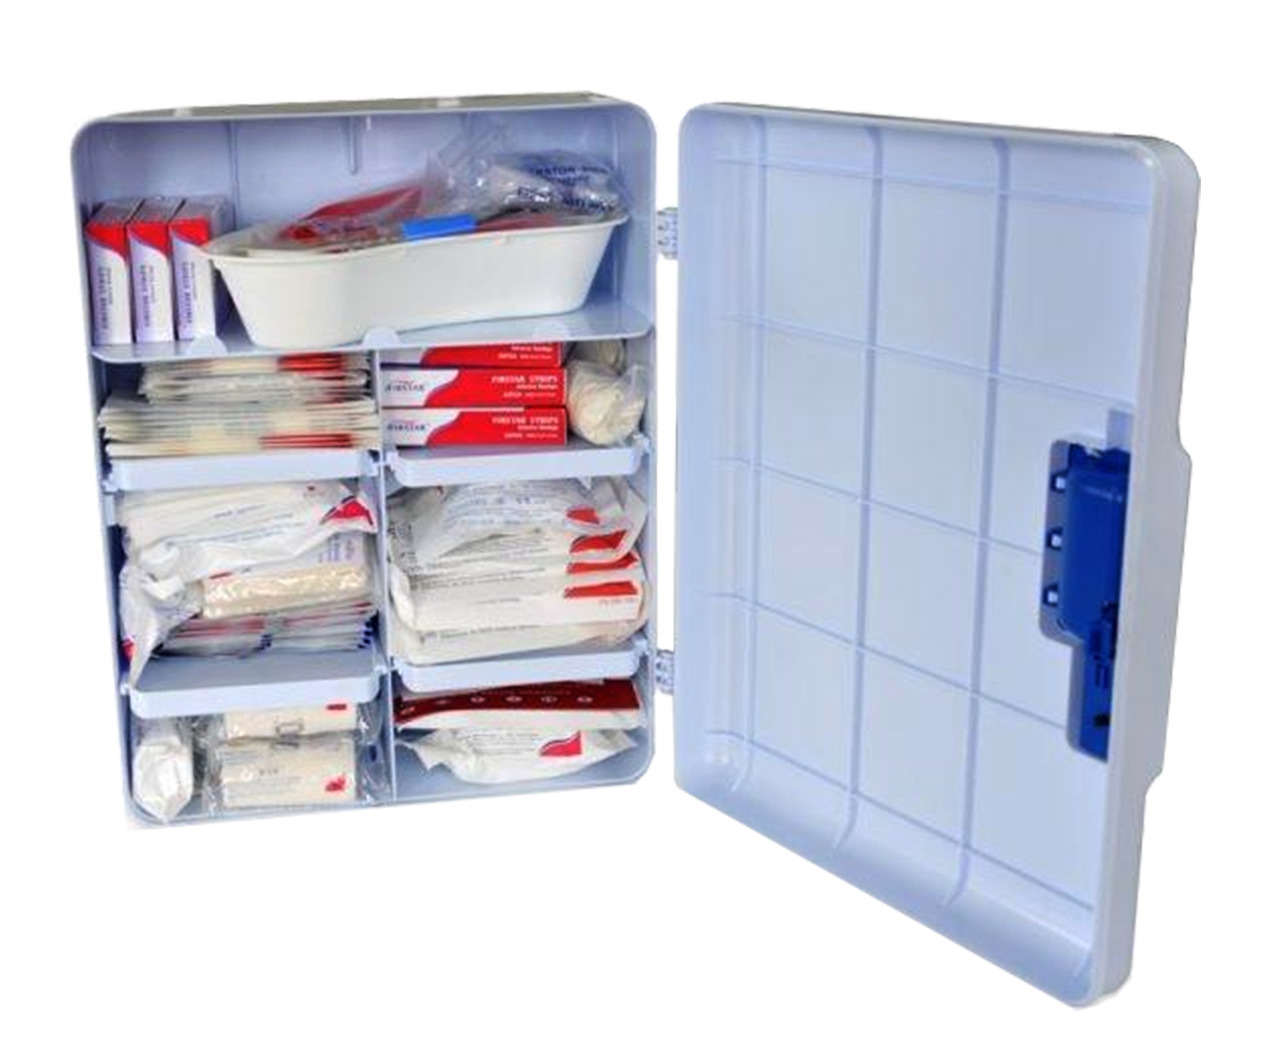 Health Emergency Kit with Medicine and Bandages